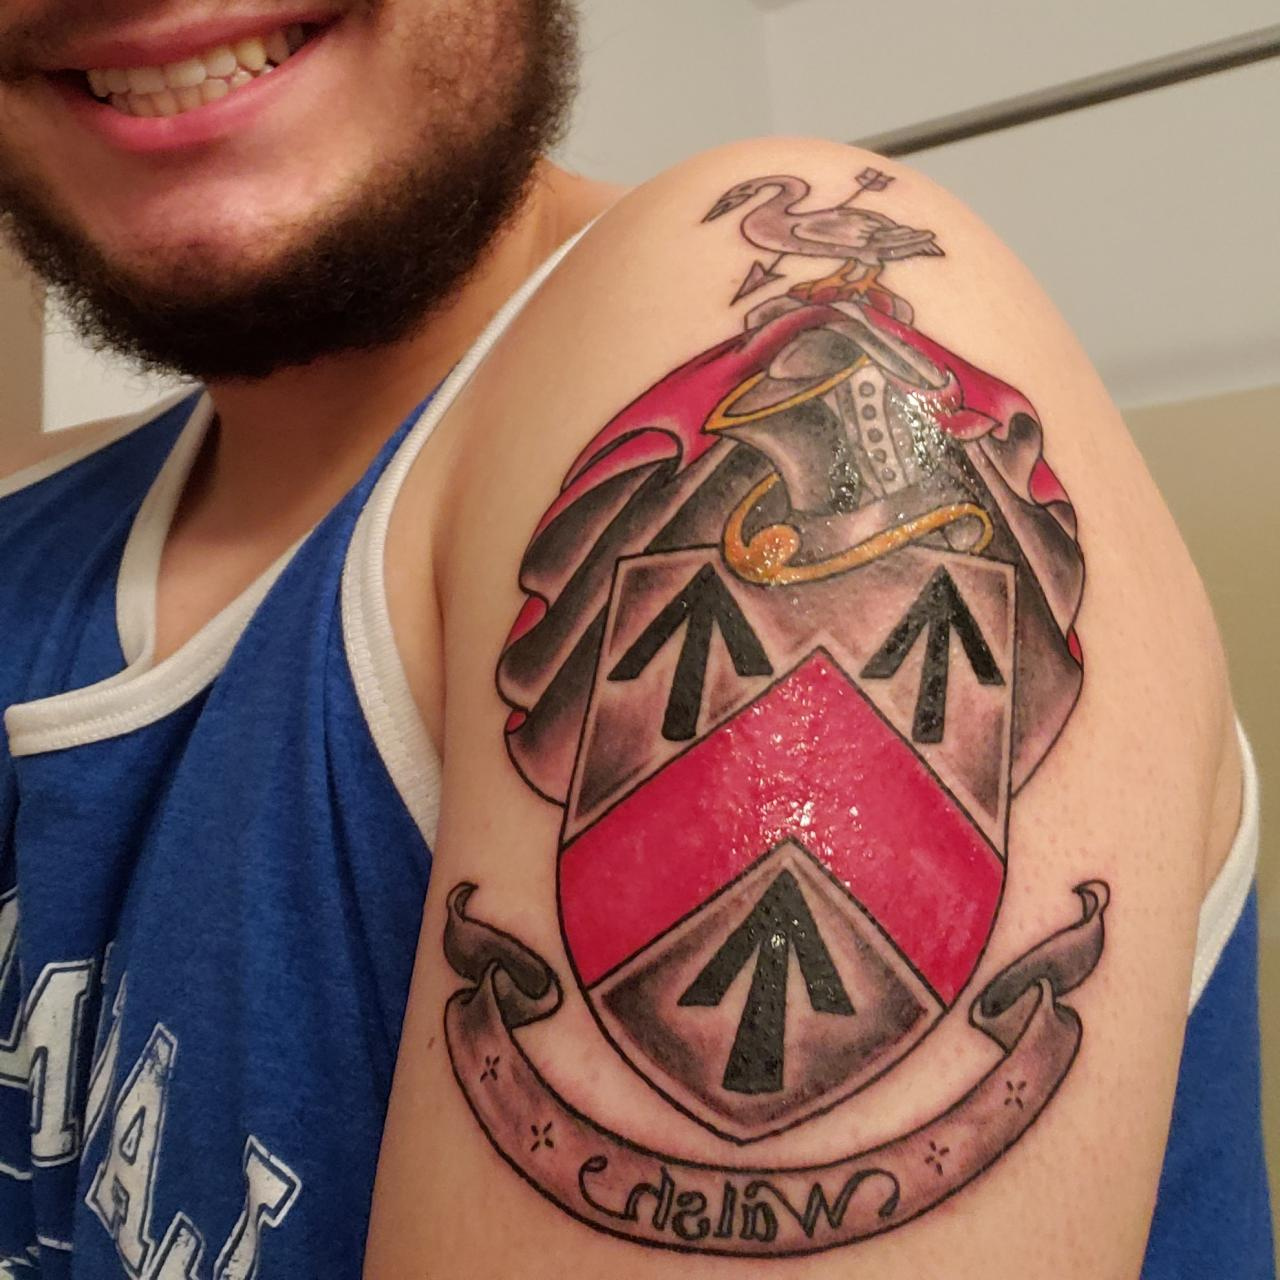 Family coat of arms tattoo done by Jeremie James at the family tradition tattto parlor in Puyallup Washington!